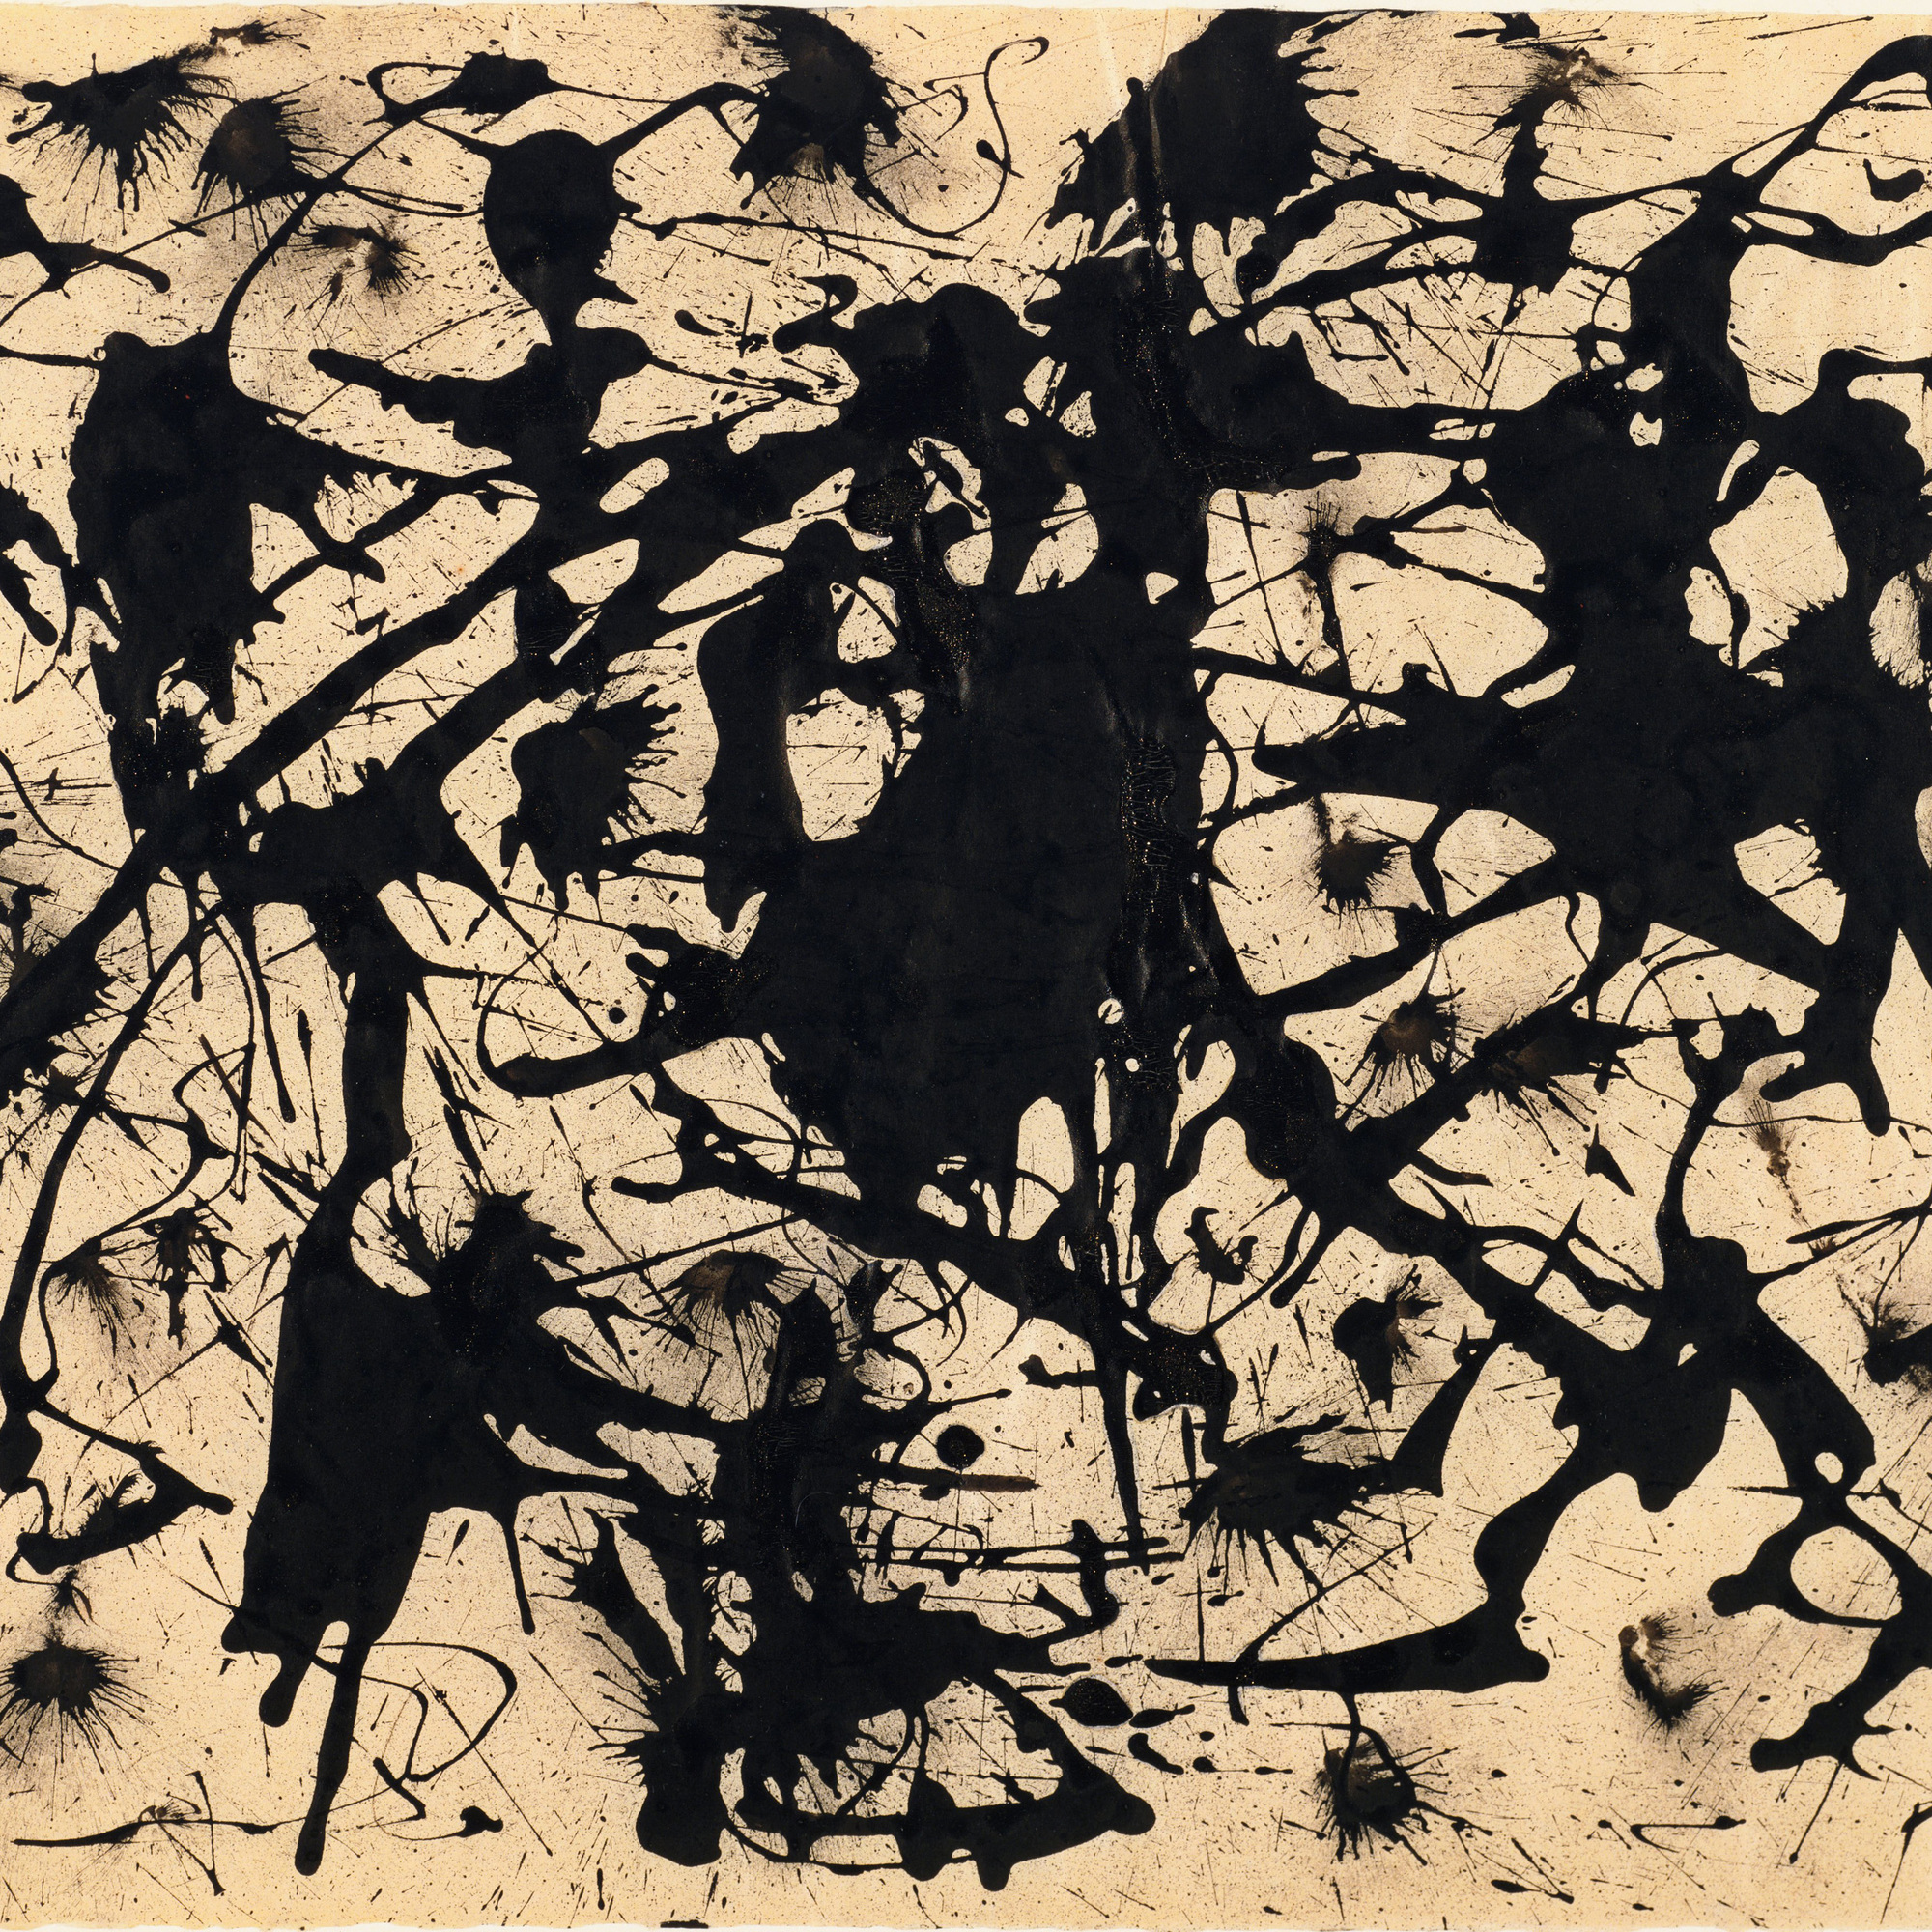 Jackson Pollock (American, 1912–1956). Untitled. c. 1950. Ink on paper, 17 1/2 x 22 1/4″ (44.5 x 56.6 cm). The Museum of Modern Art, New York. Gift of Jo Carole and Ronald S. Lauder in honor of Eliza Parkinson Cobb, 1982. © 2015 Pollock-Krasner Foundation/Artists Rights Society (ARS), New York